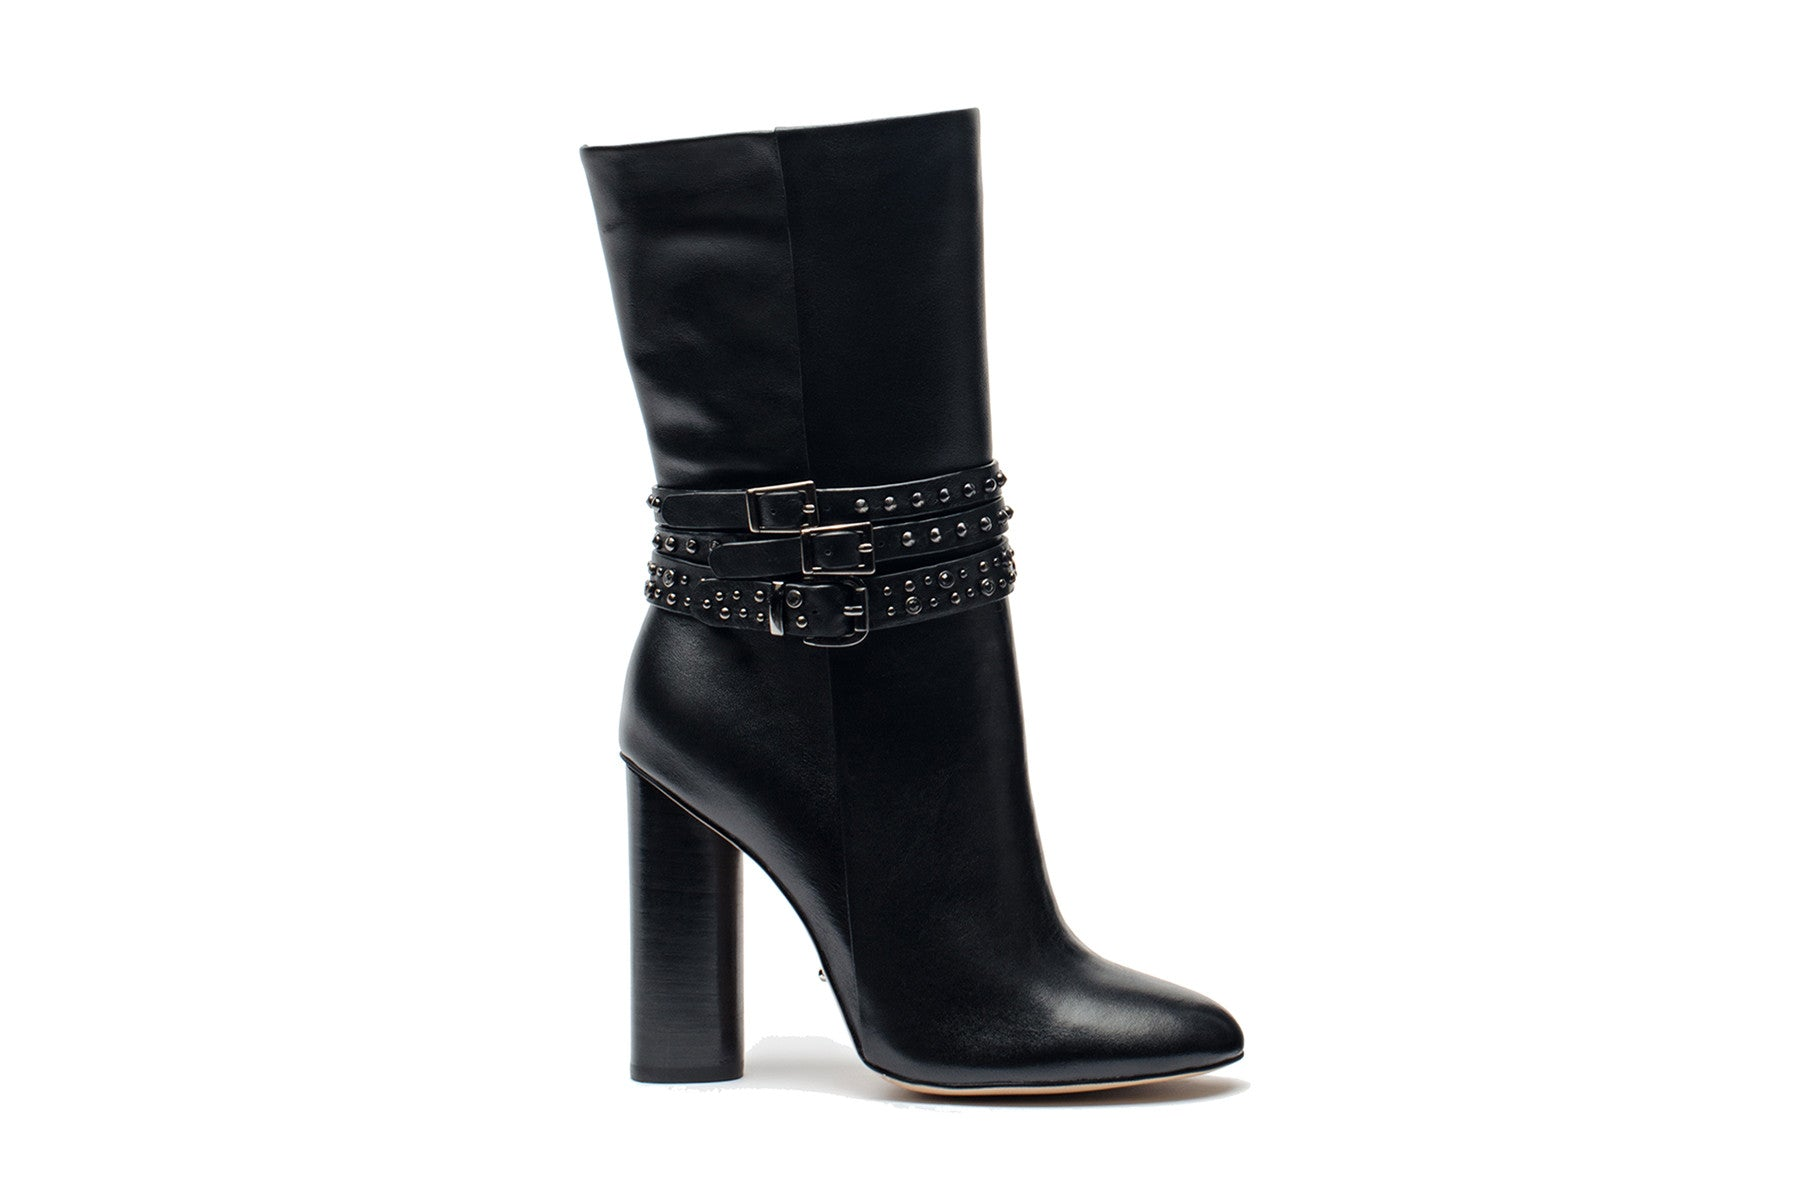 428a48ecd32 Black Leather Short Boots - Angelina Voloshina - AV Heels - 1 ...